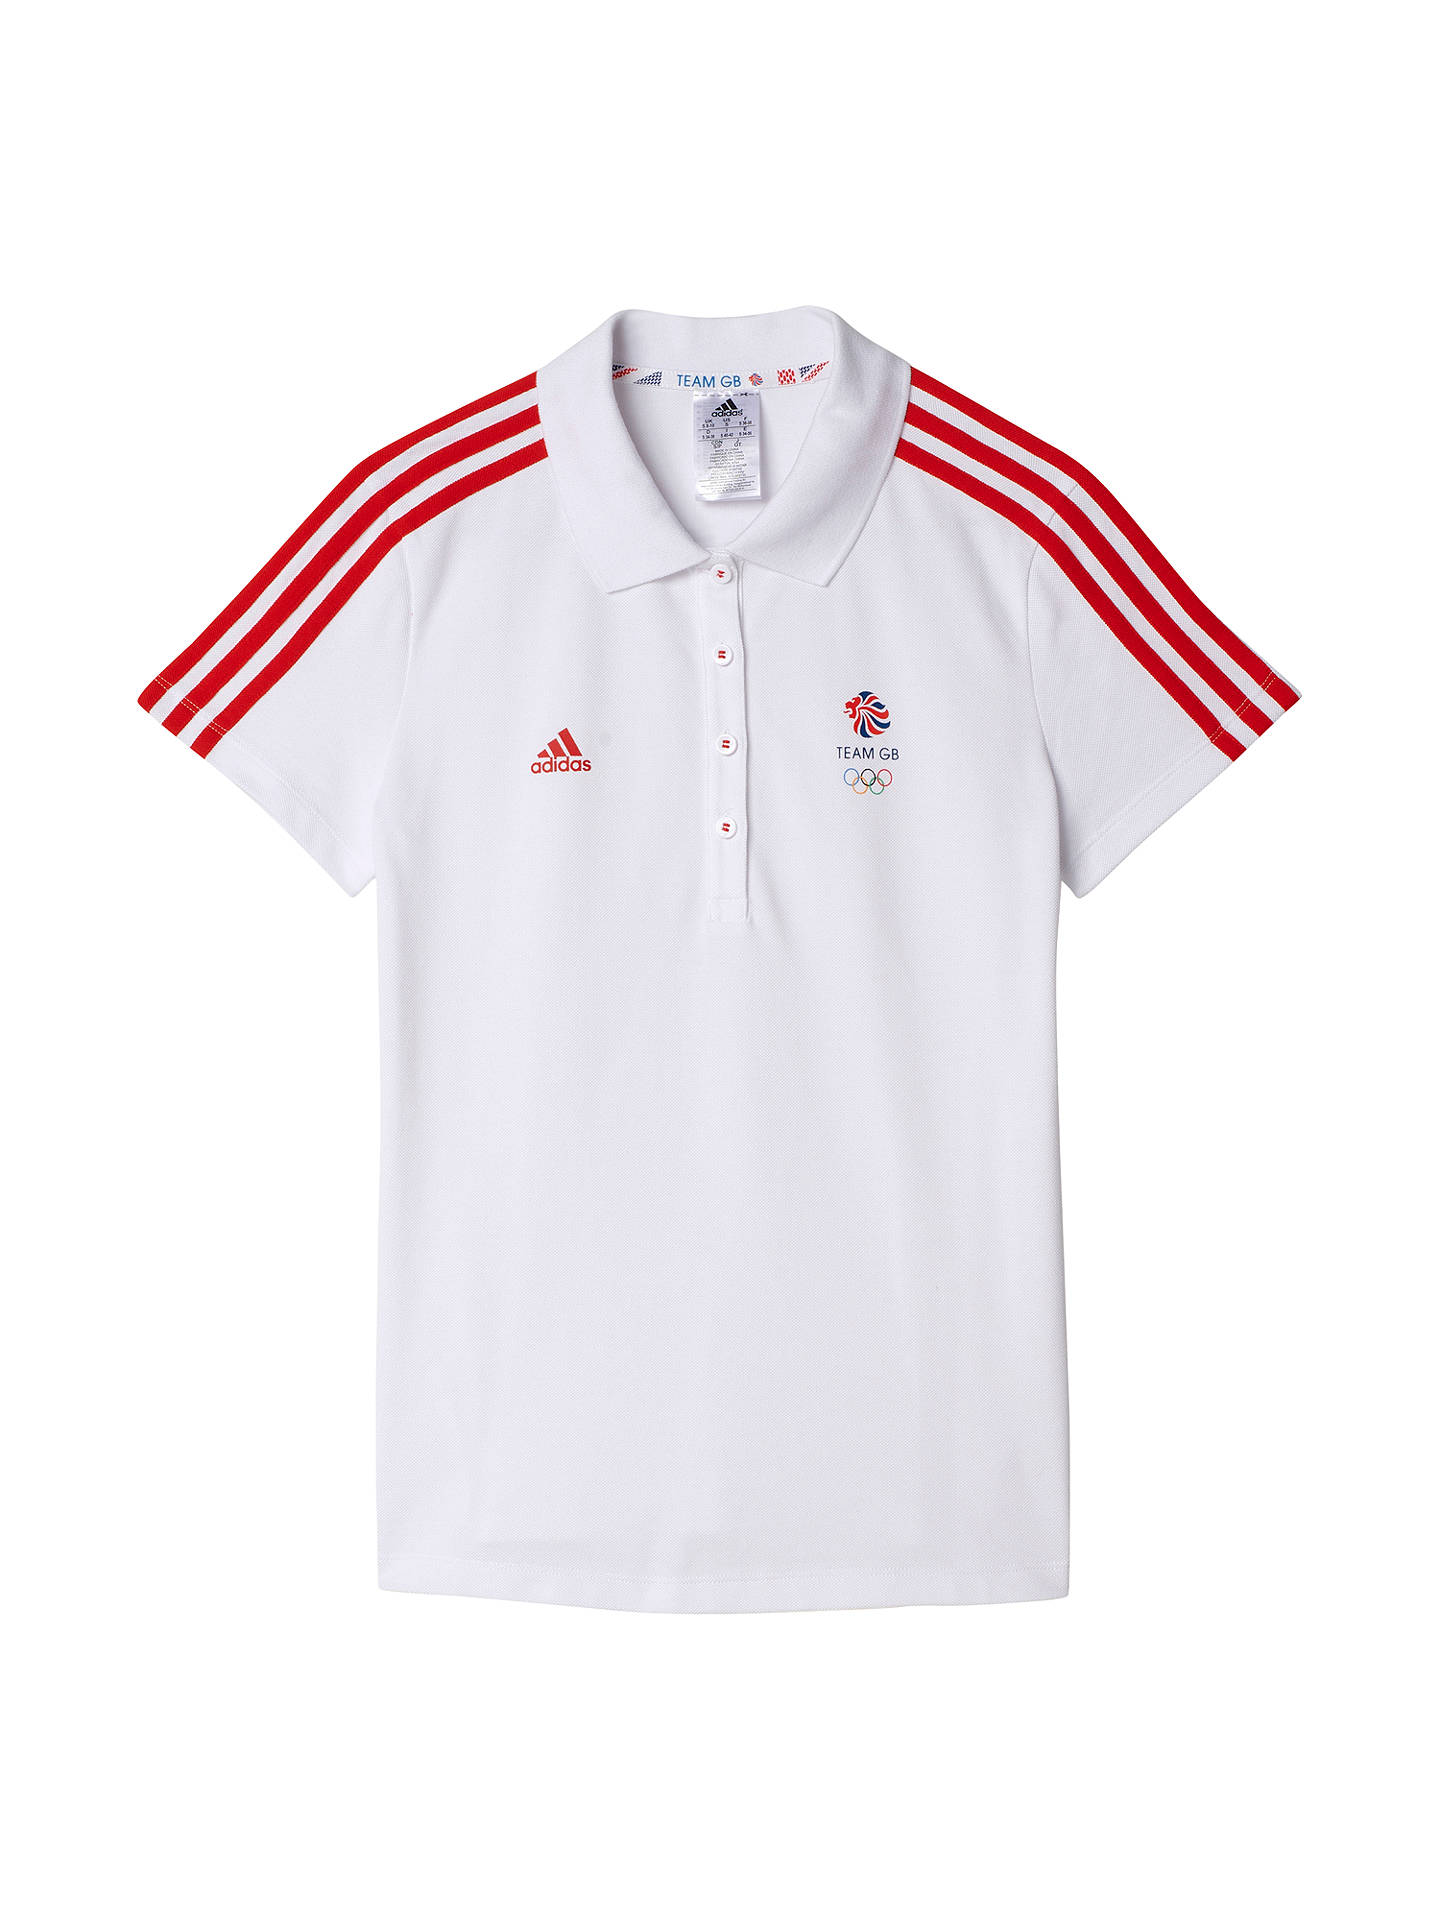 147280d3c Buy adidas Team GB Women's Polo Shirt, White, XS Online at johnlewis. ...